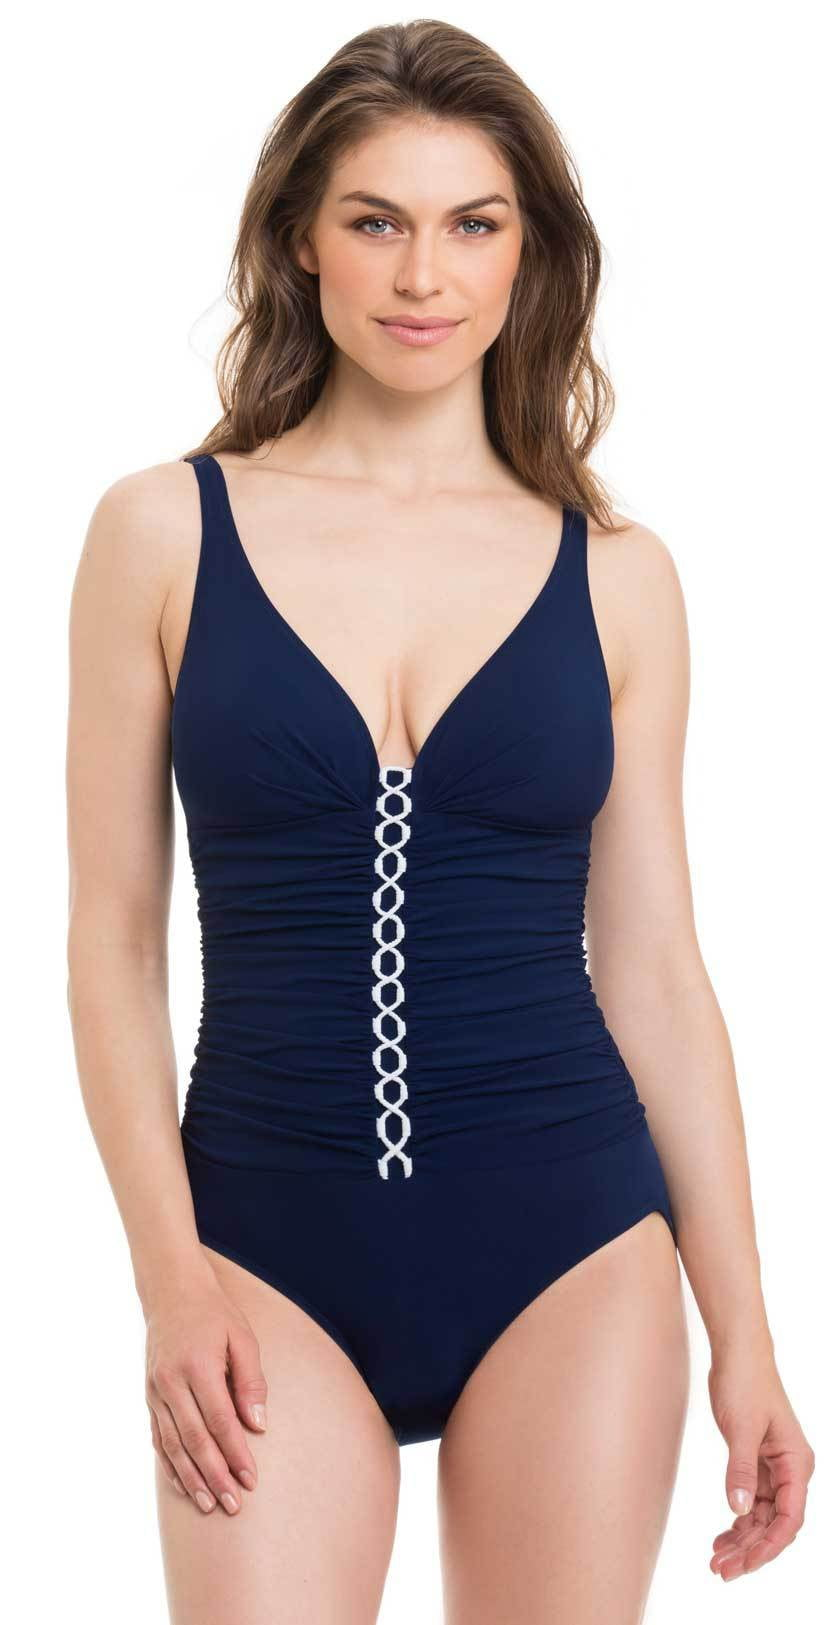 Profile By Gottex Harbor Island V Neck One Piece in D Cup E832-2D31-410